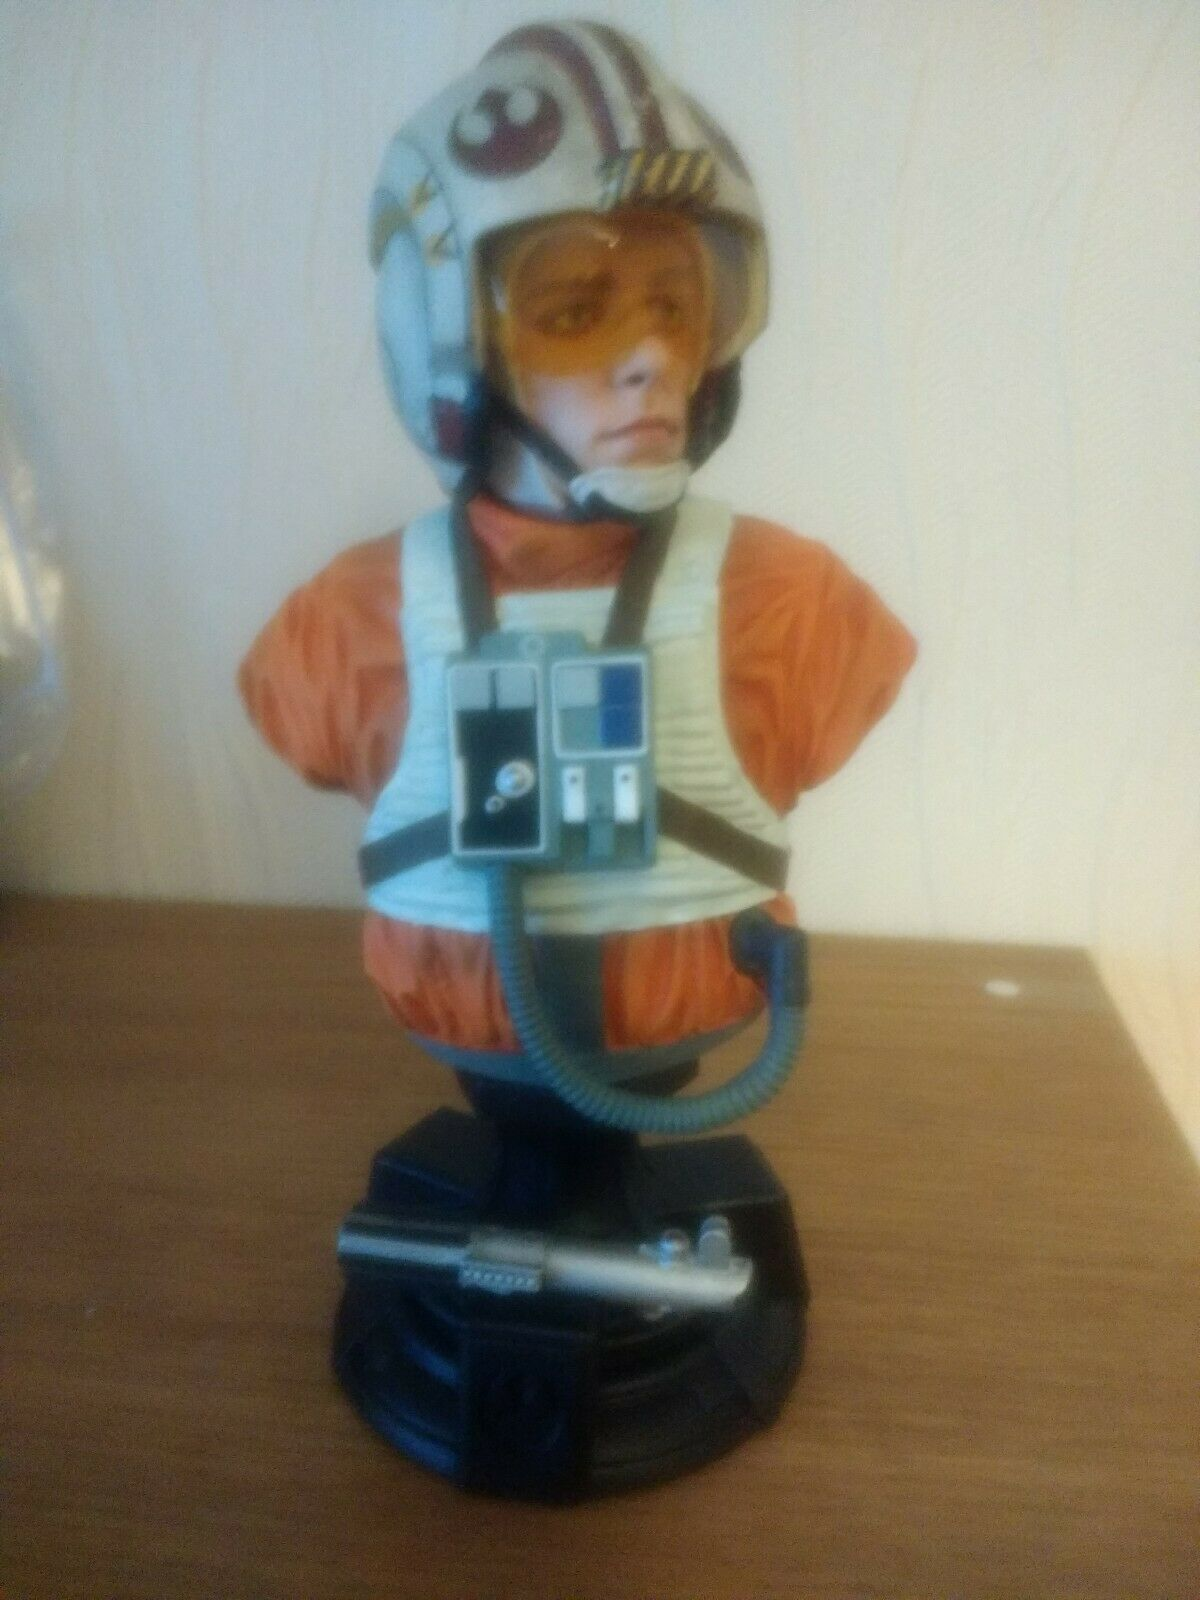 Star Wars Episode IV Bust 1 1 1 6 Luke X-Wing Pilot limited edition 40th anniversary fae555